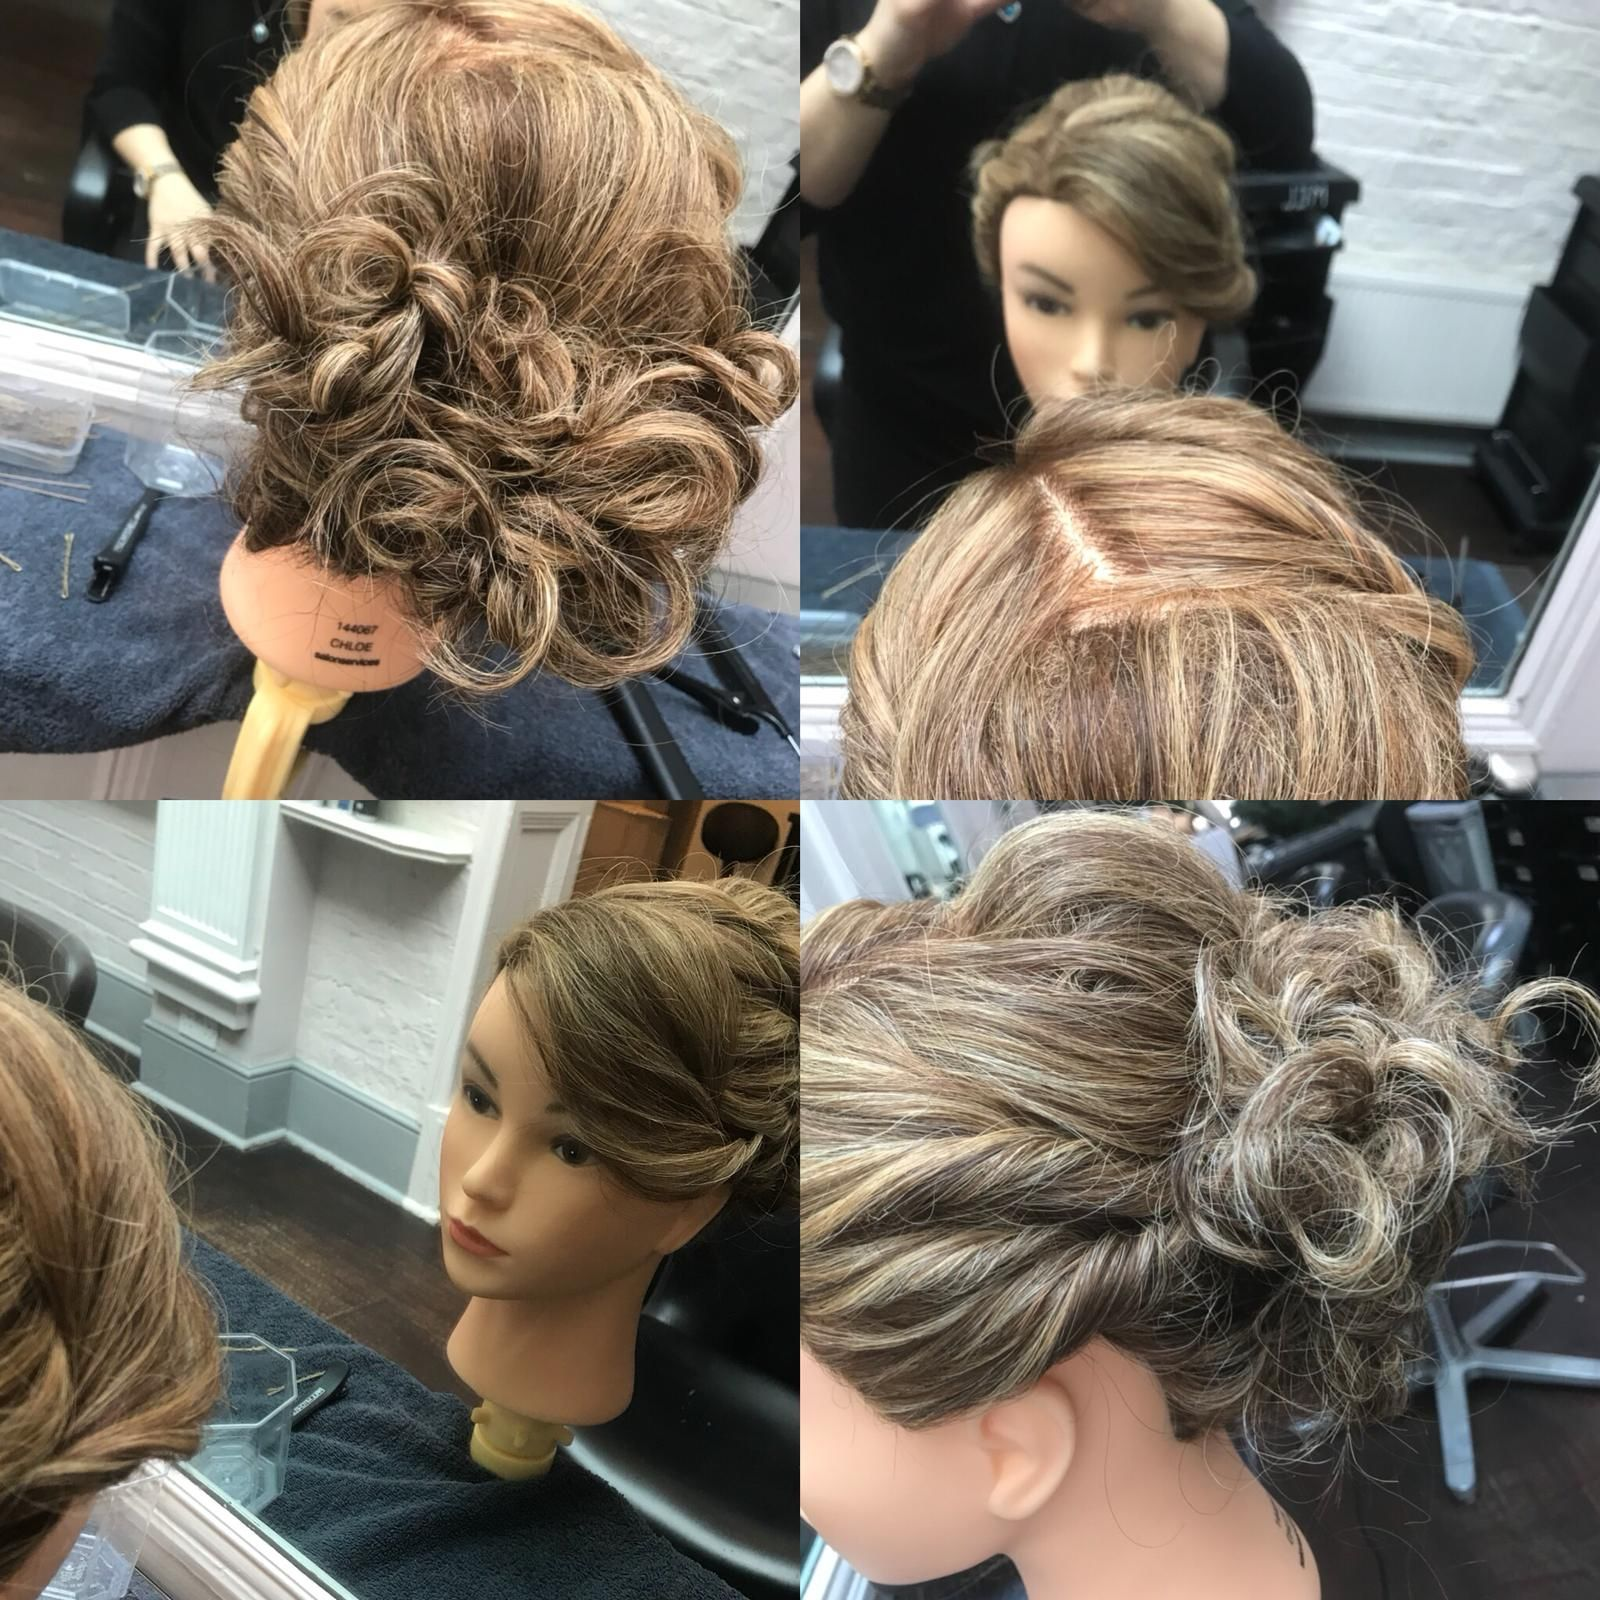 Some More Experimental Styles By Mel Roxbyhair Development Research Beckenham Salon Hairdressers Hairdresser Style Sty Hair Styles Hair Hair Salon